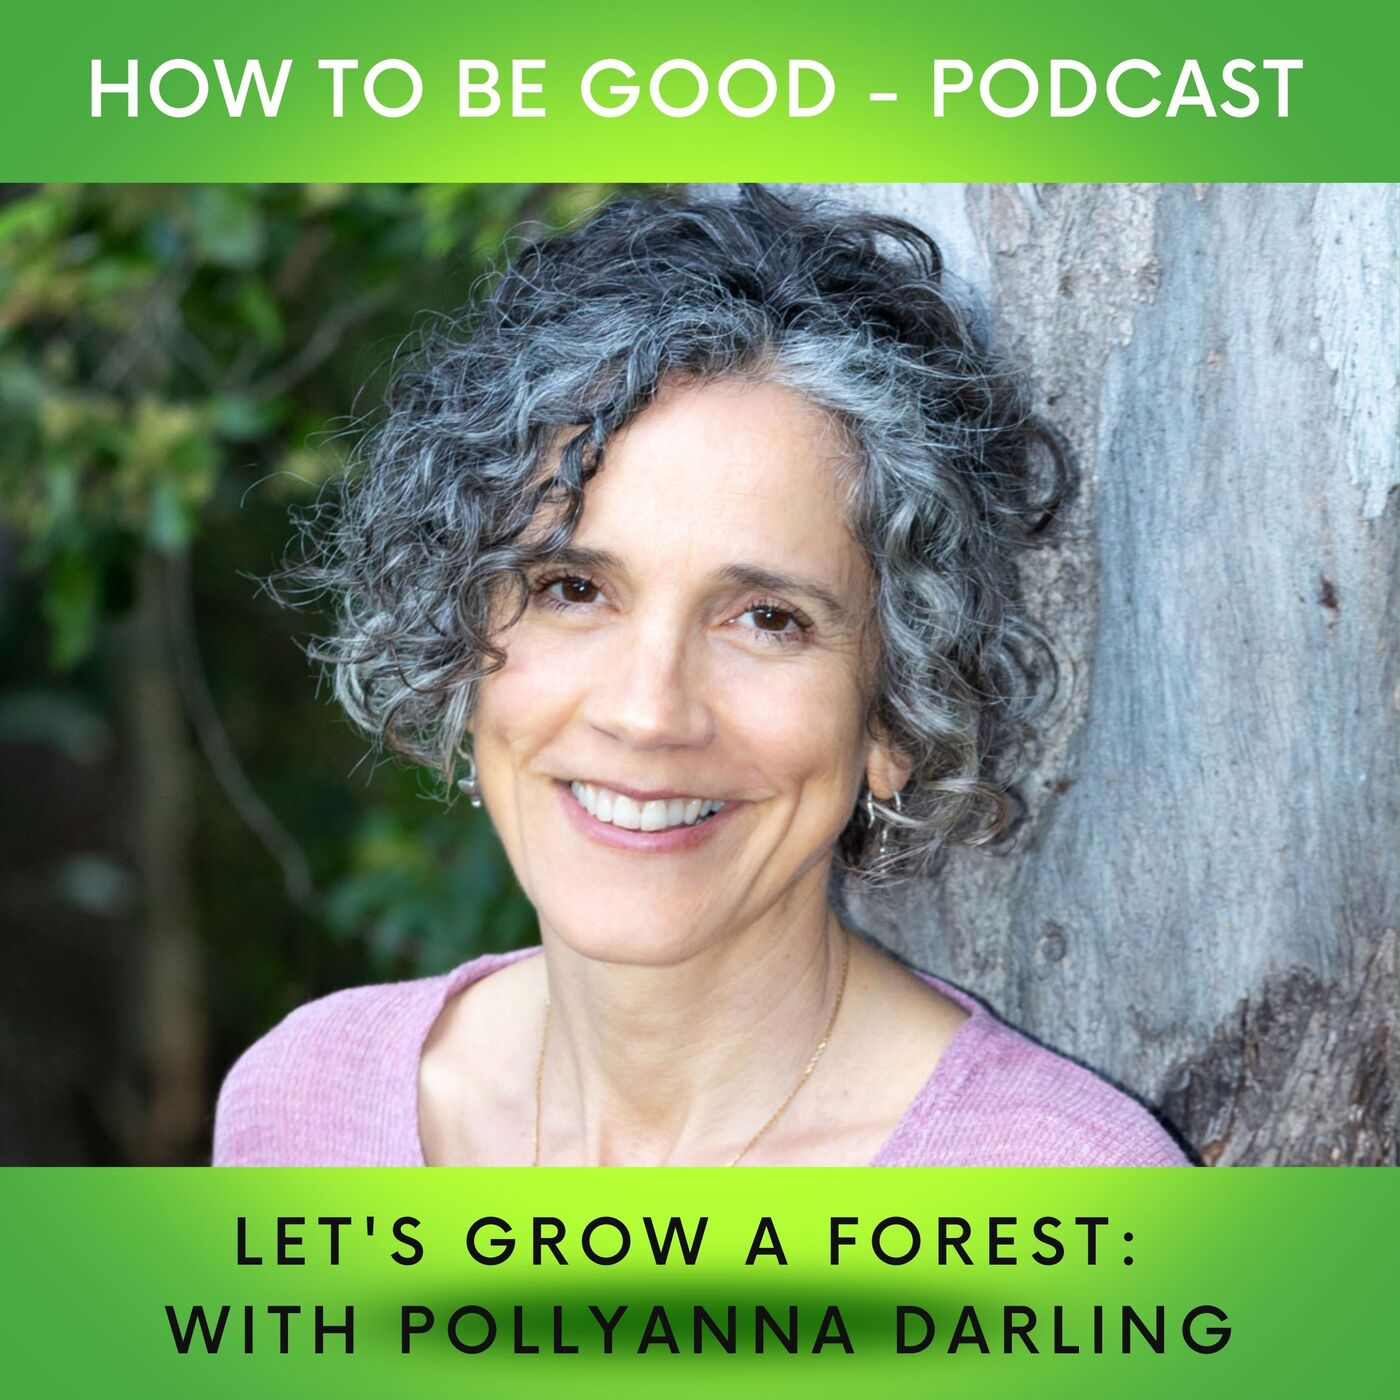 Let's grow a forest: we speak to Pollyanna Darling from Tree Sisters